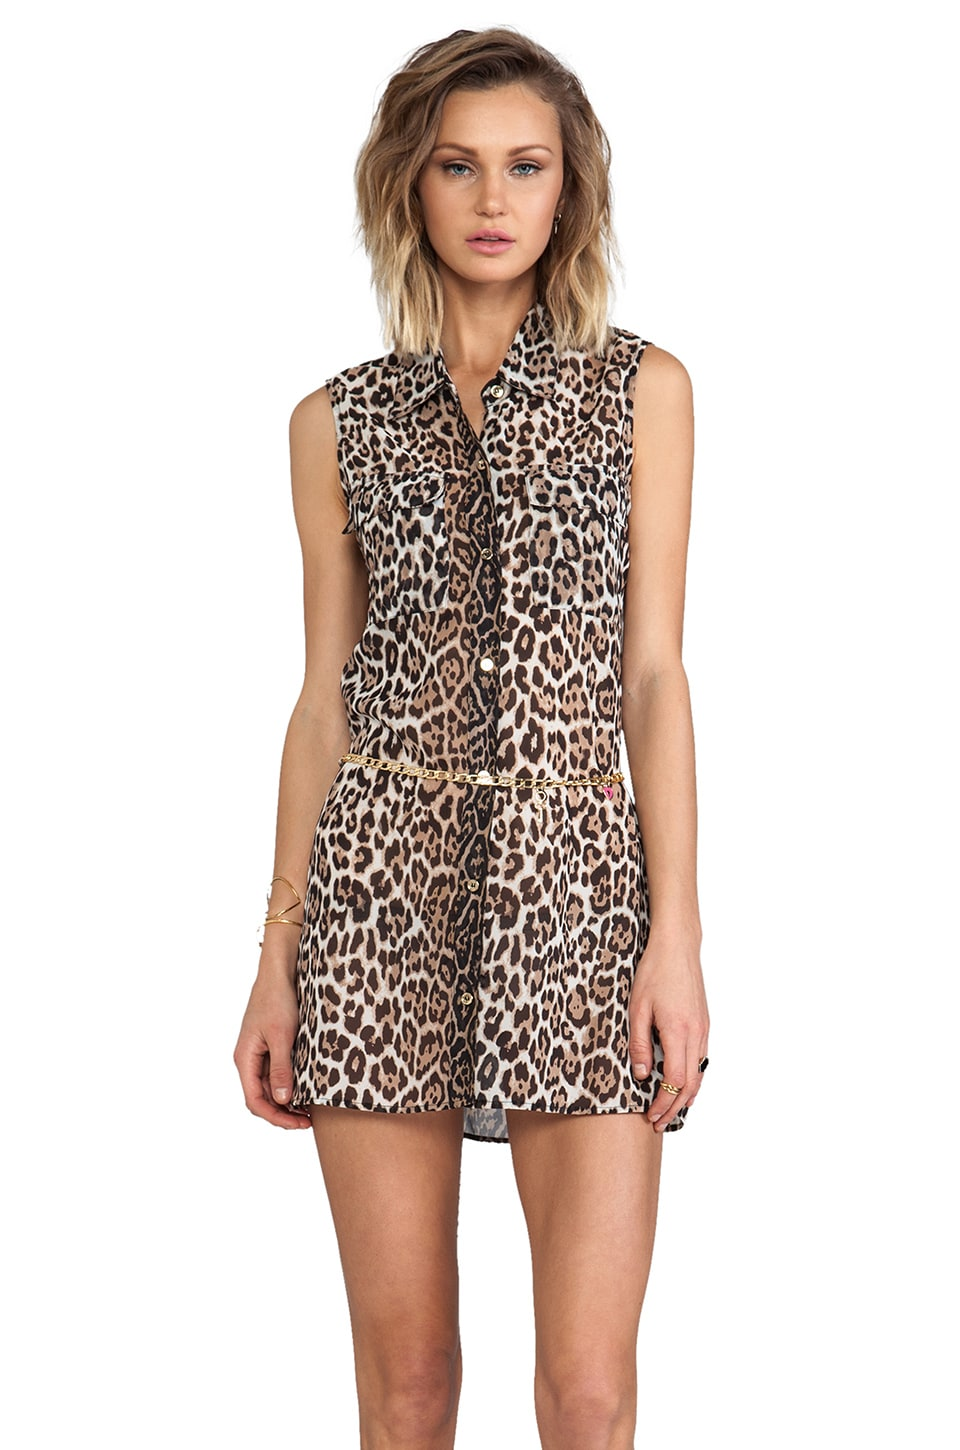 Juicy Couture Luxe Leopard Cover Up Dress in Angel